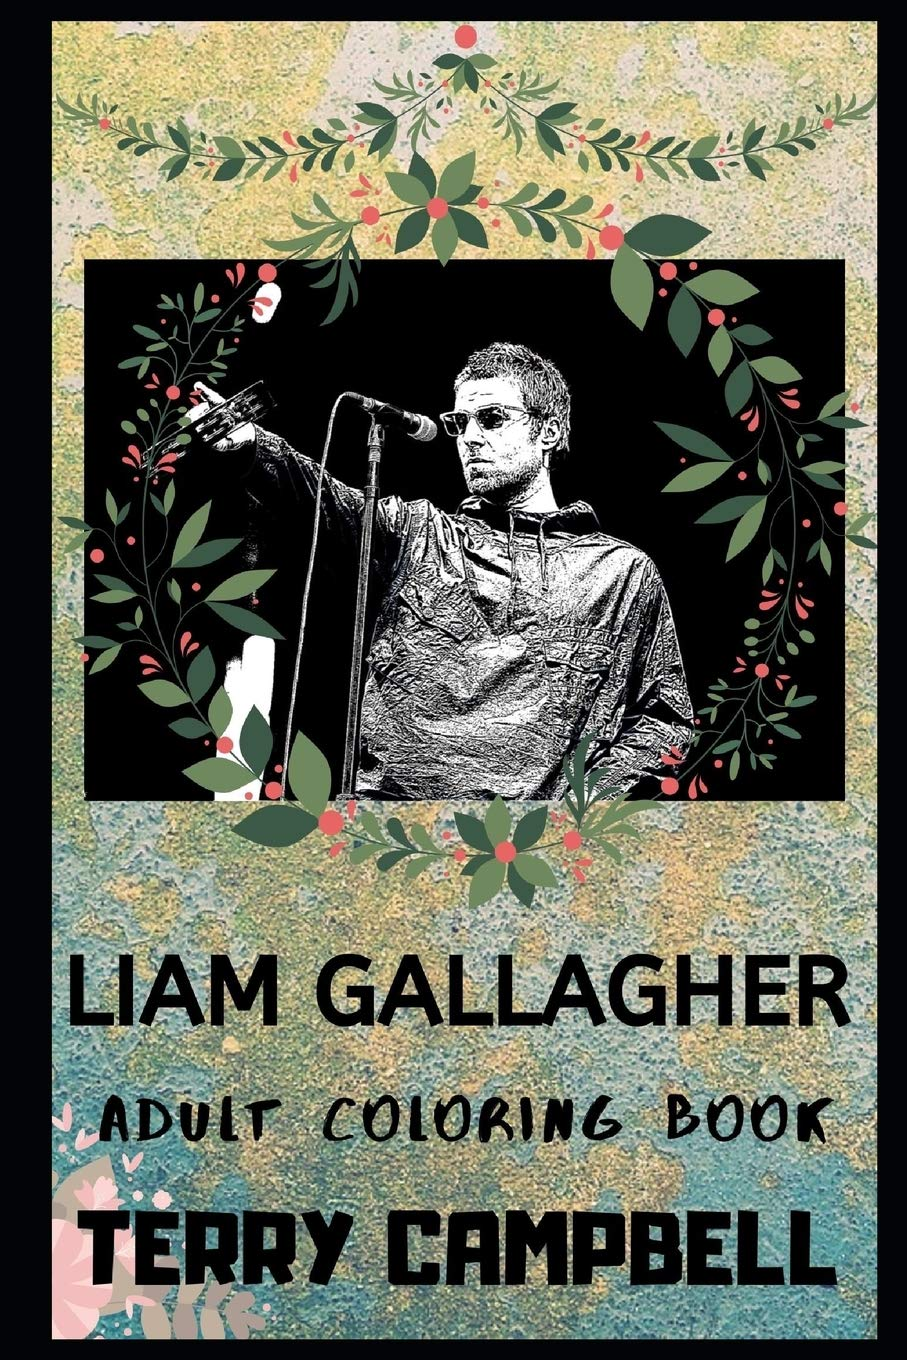 Liam Gallagher 14 English Singer Poster Music Star Photo Oasis Band Print Rock